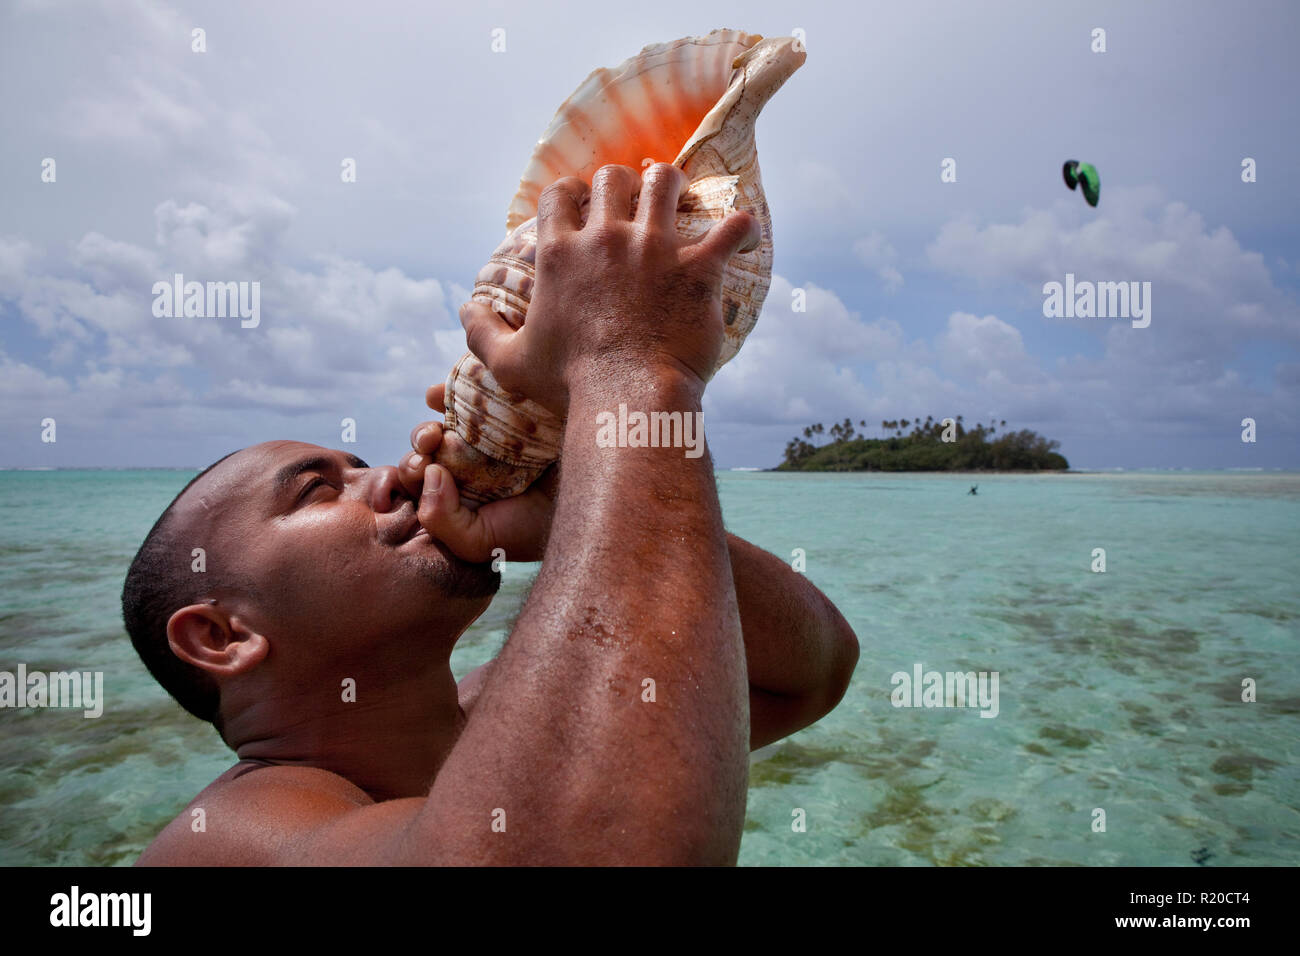 Local guide sounding off on a conch horn in Muri Lagoon, Rarotonga, Cook Islands. - Stock Image